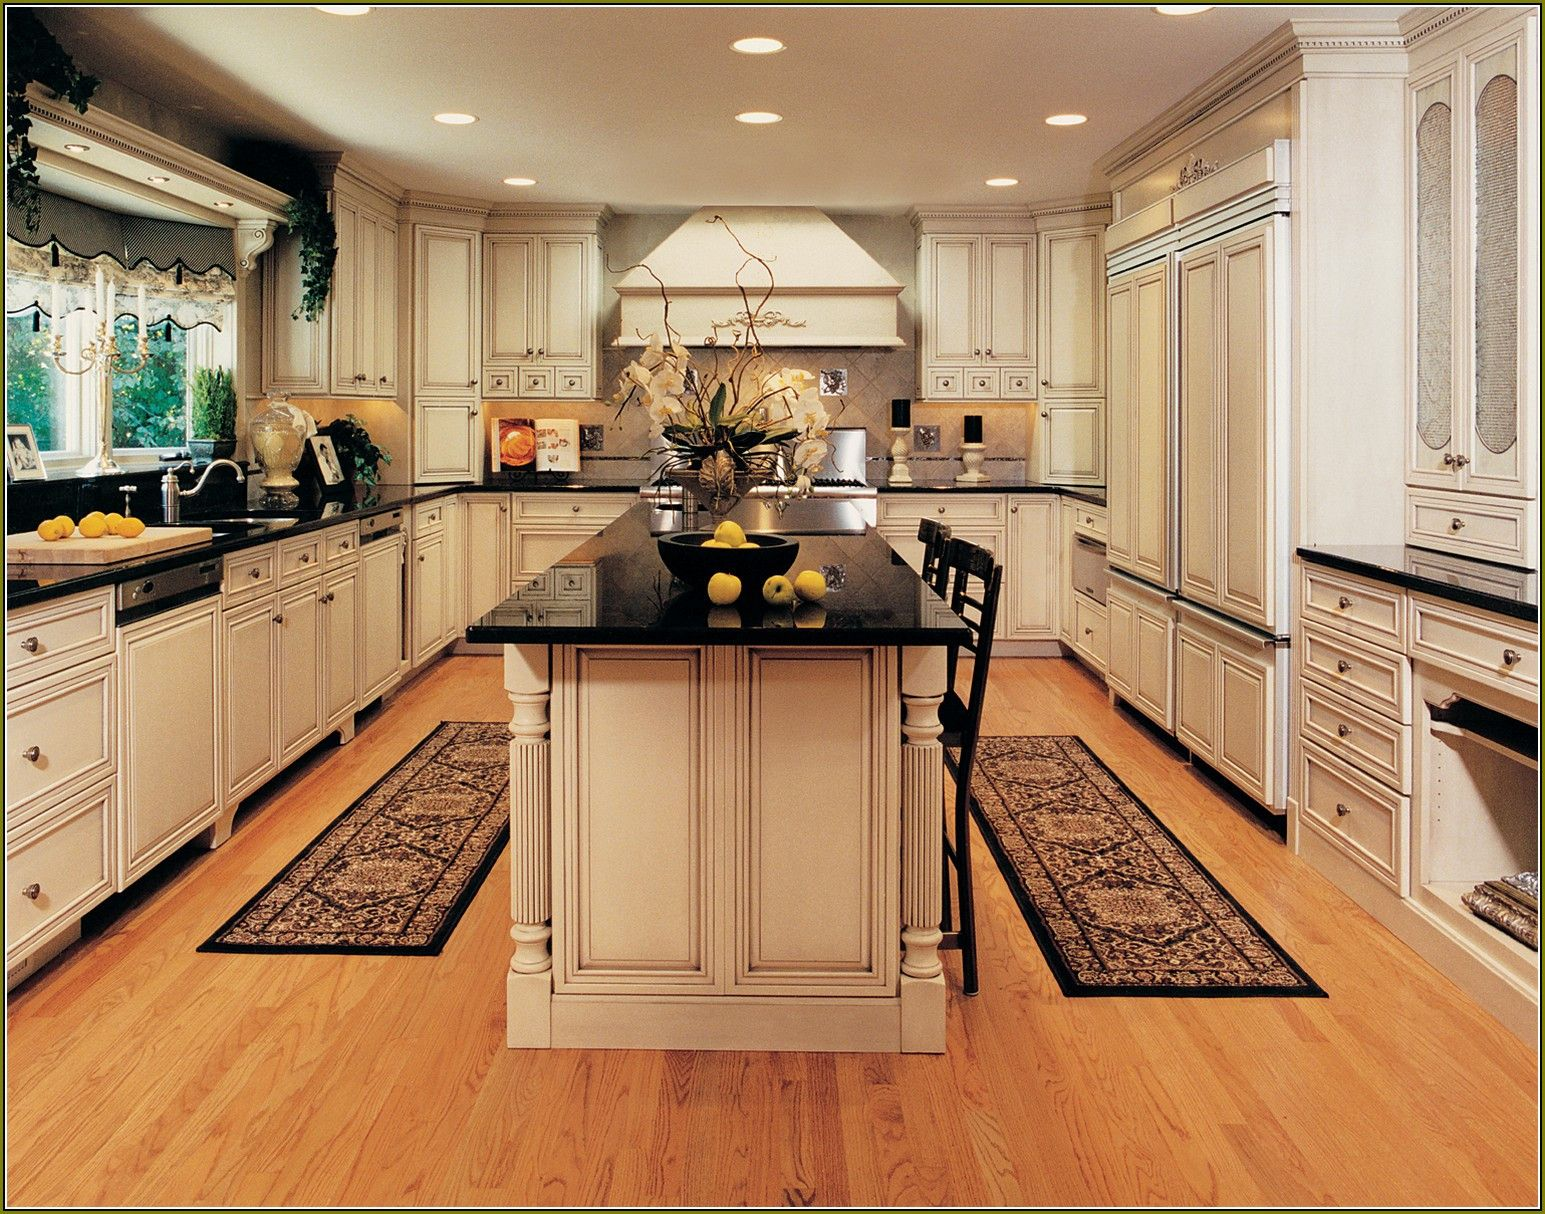 Quaker Maid Kitchen Cabinets - Kitchen Design Ideas on all american maid, the kitchen maid, royal maid,